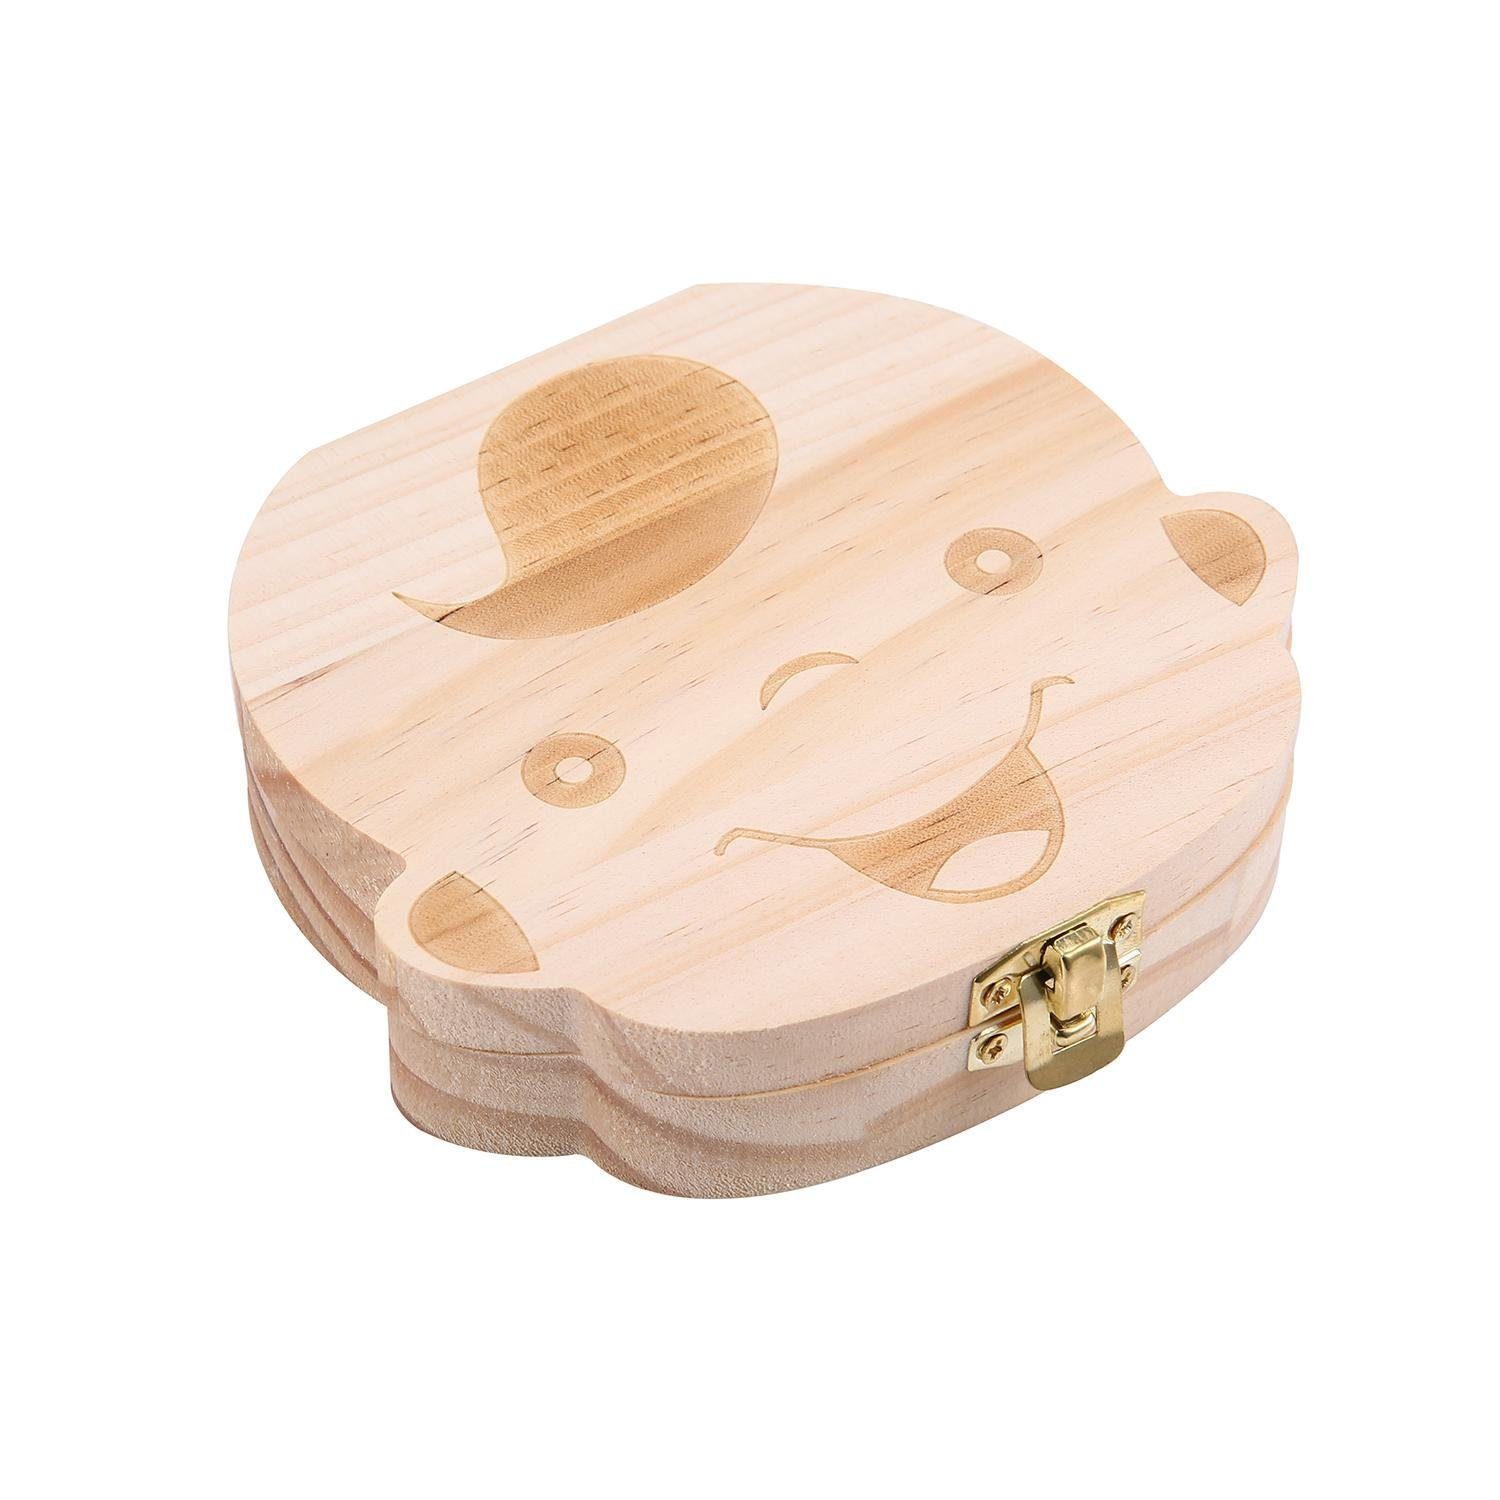 Wooden Baby Tooth Box Organizer Milk Tooth Storage Box Baby Gift for Boy Girl (Boy) TUEU Store